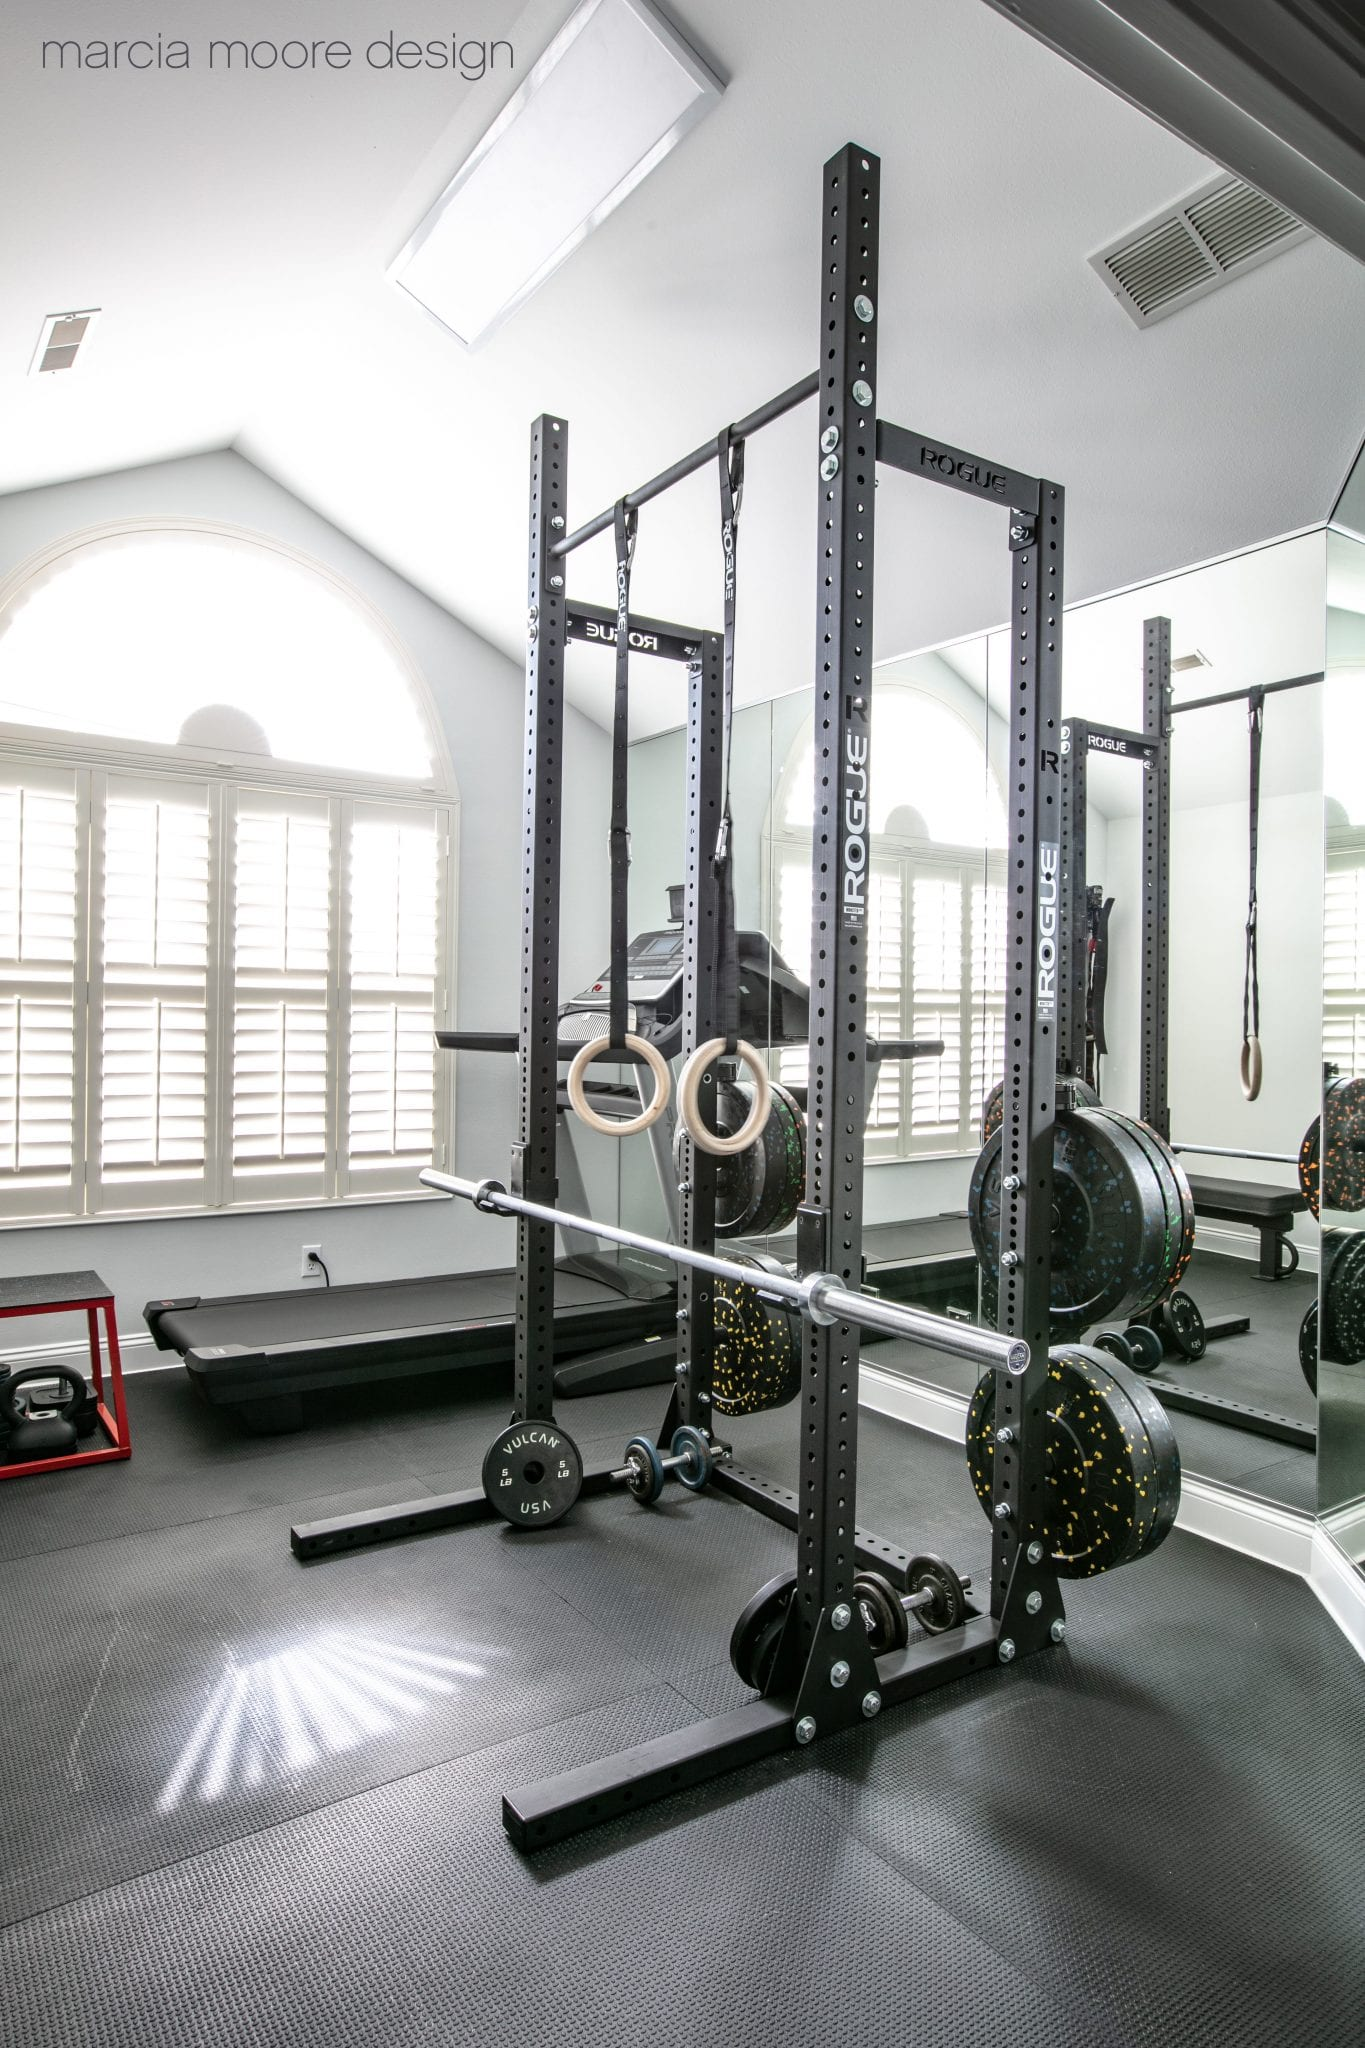 Black and gray exercise equipment inside room